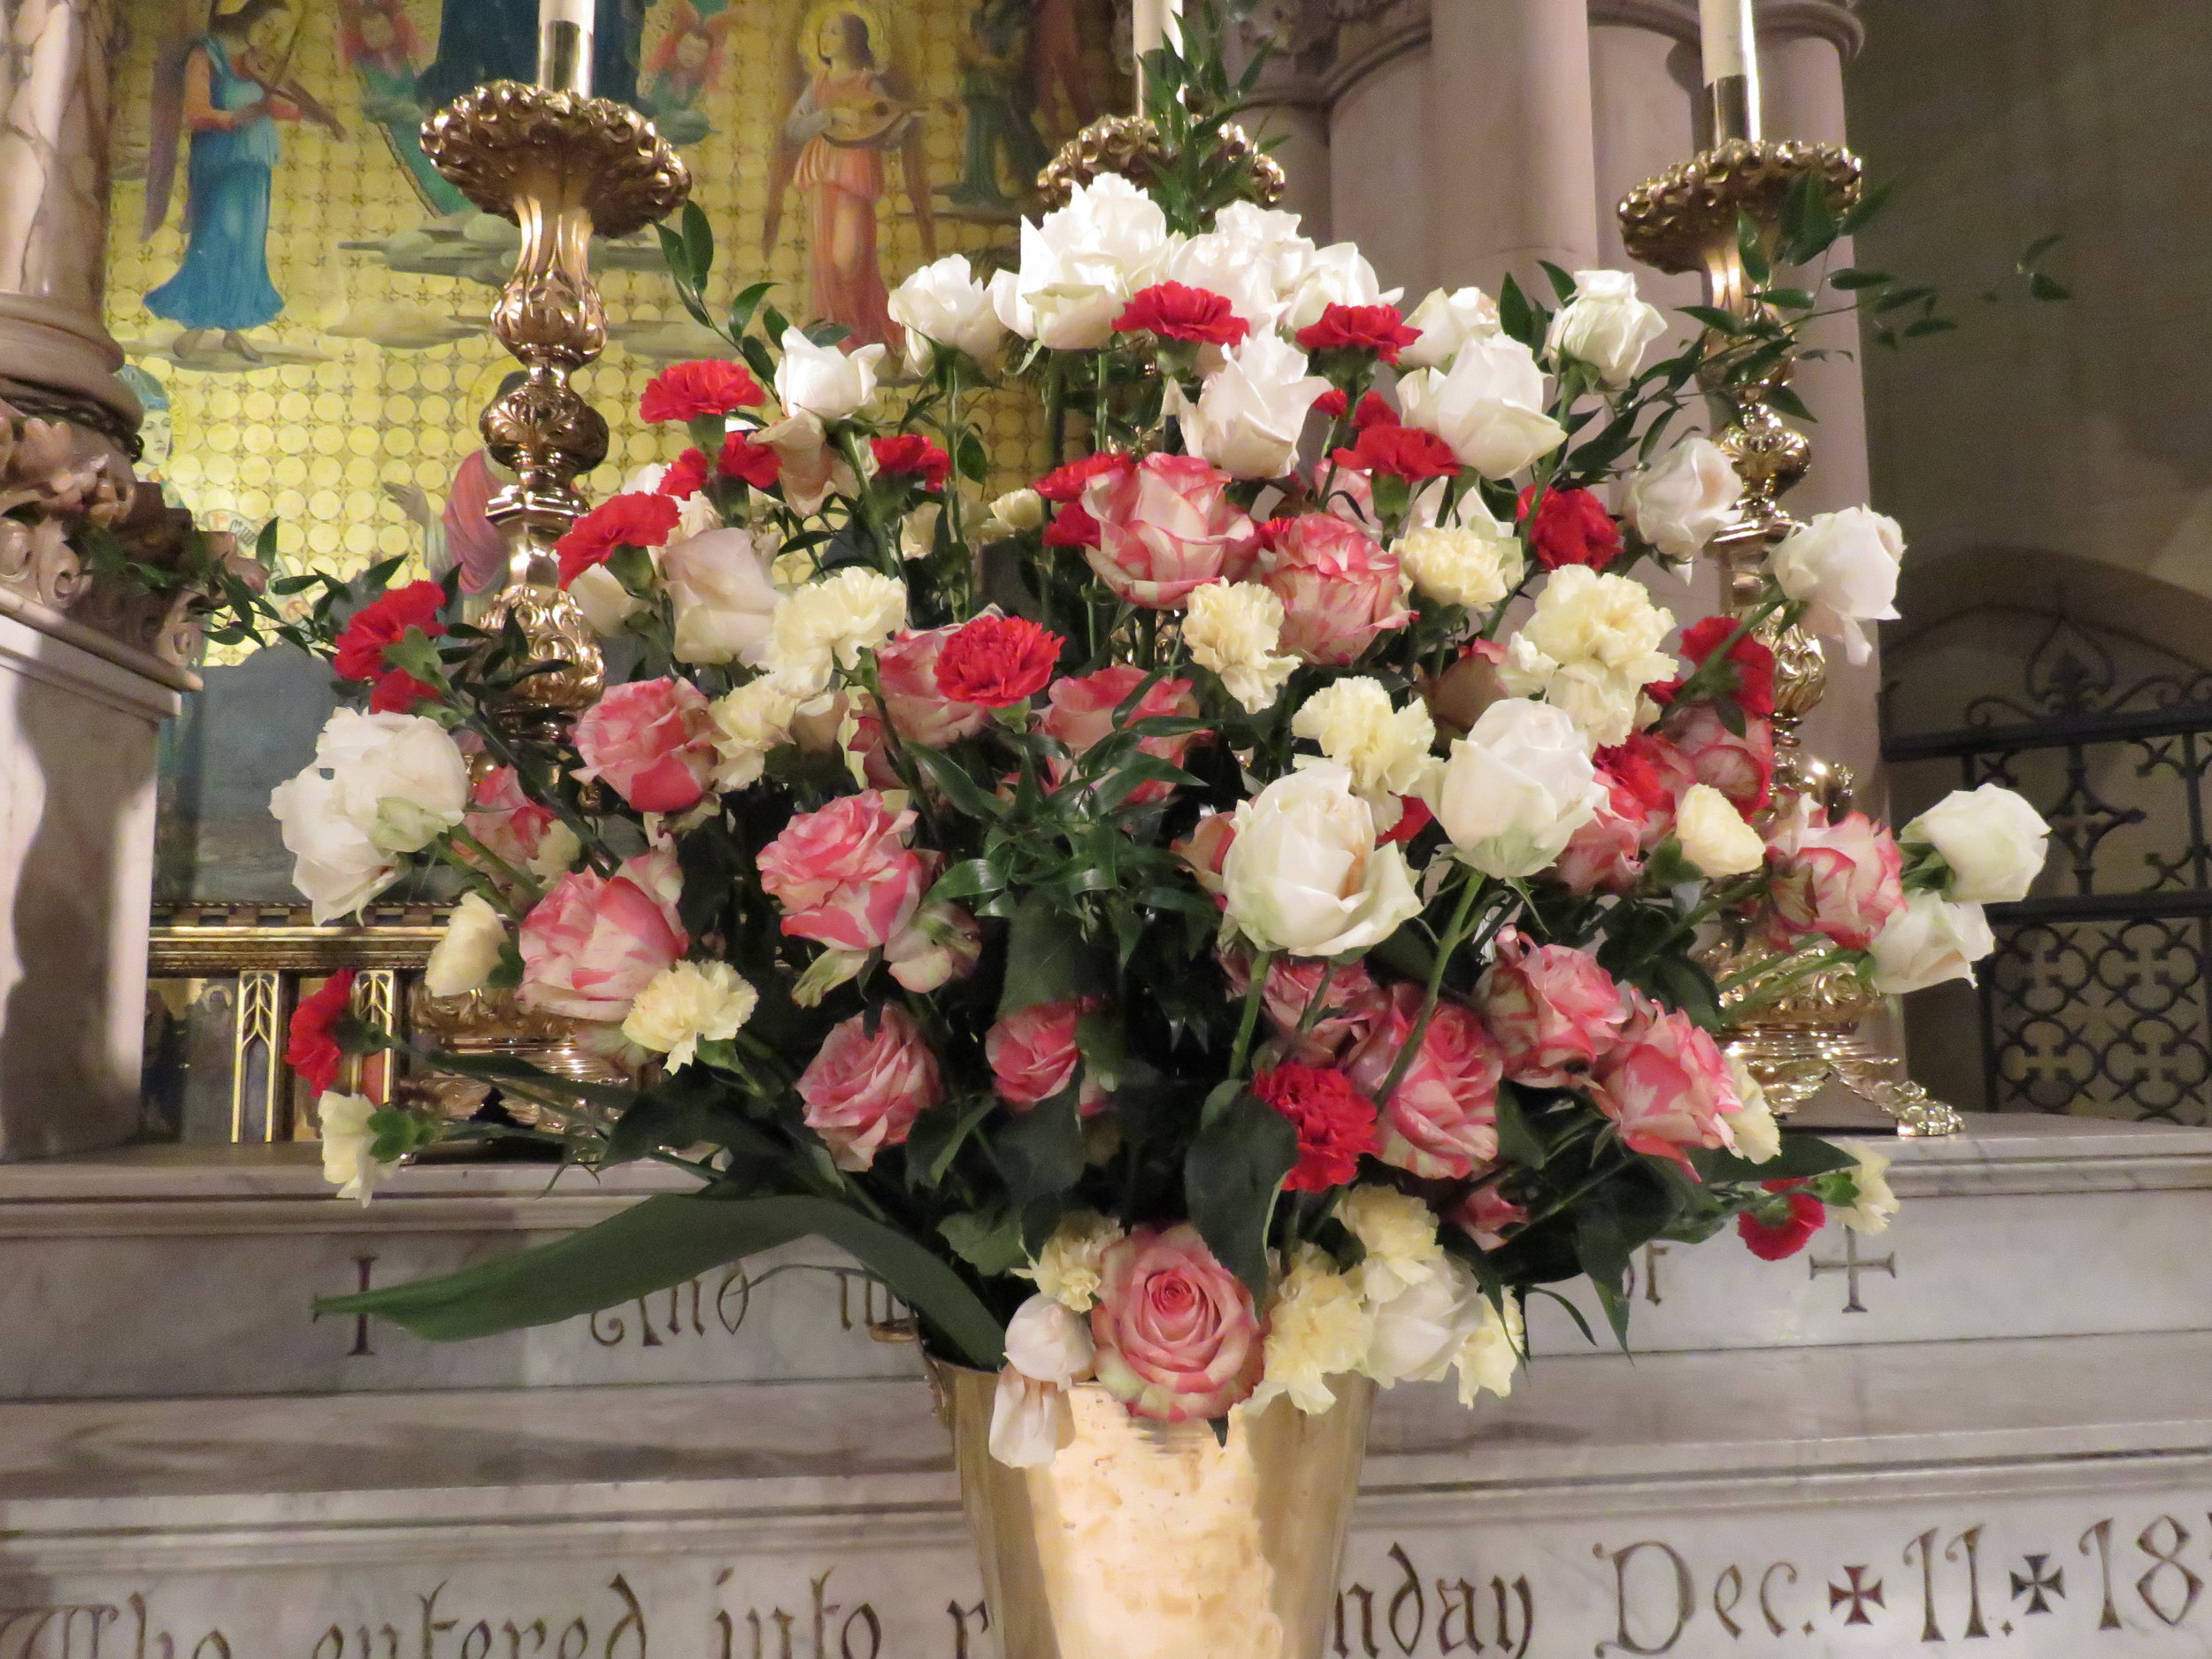 The flowers were given to the glory of God and in loving memory of Thomas G. Moran by his brother John Moran.     Photo: Damien Joseph SSF